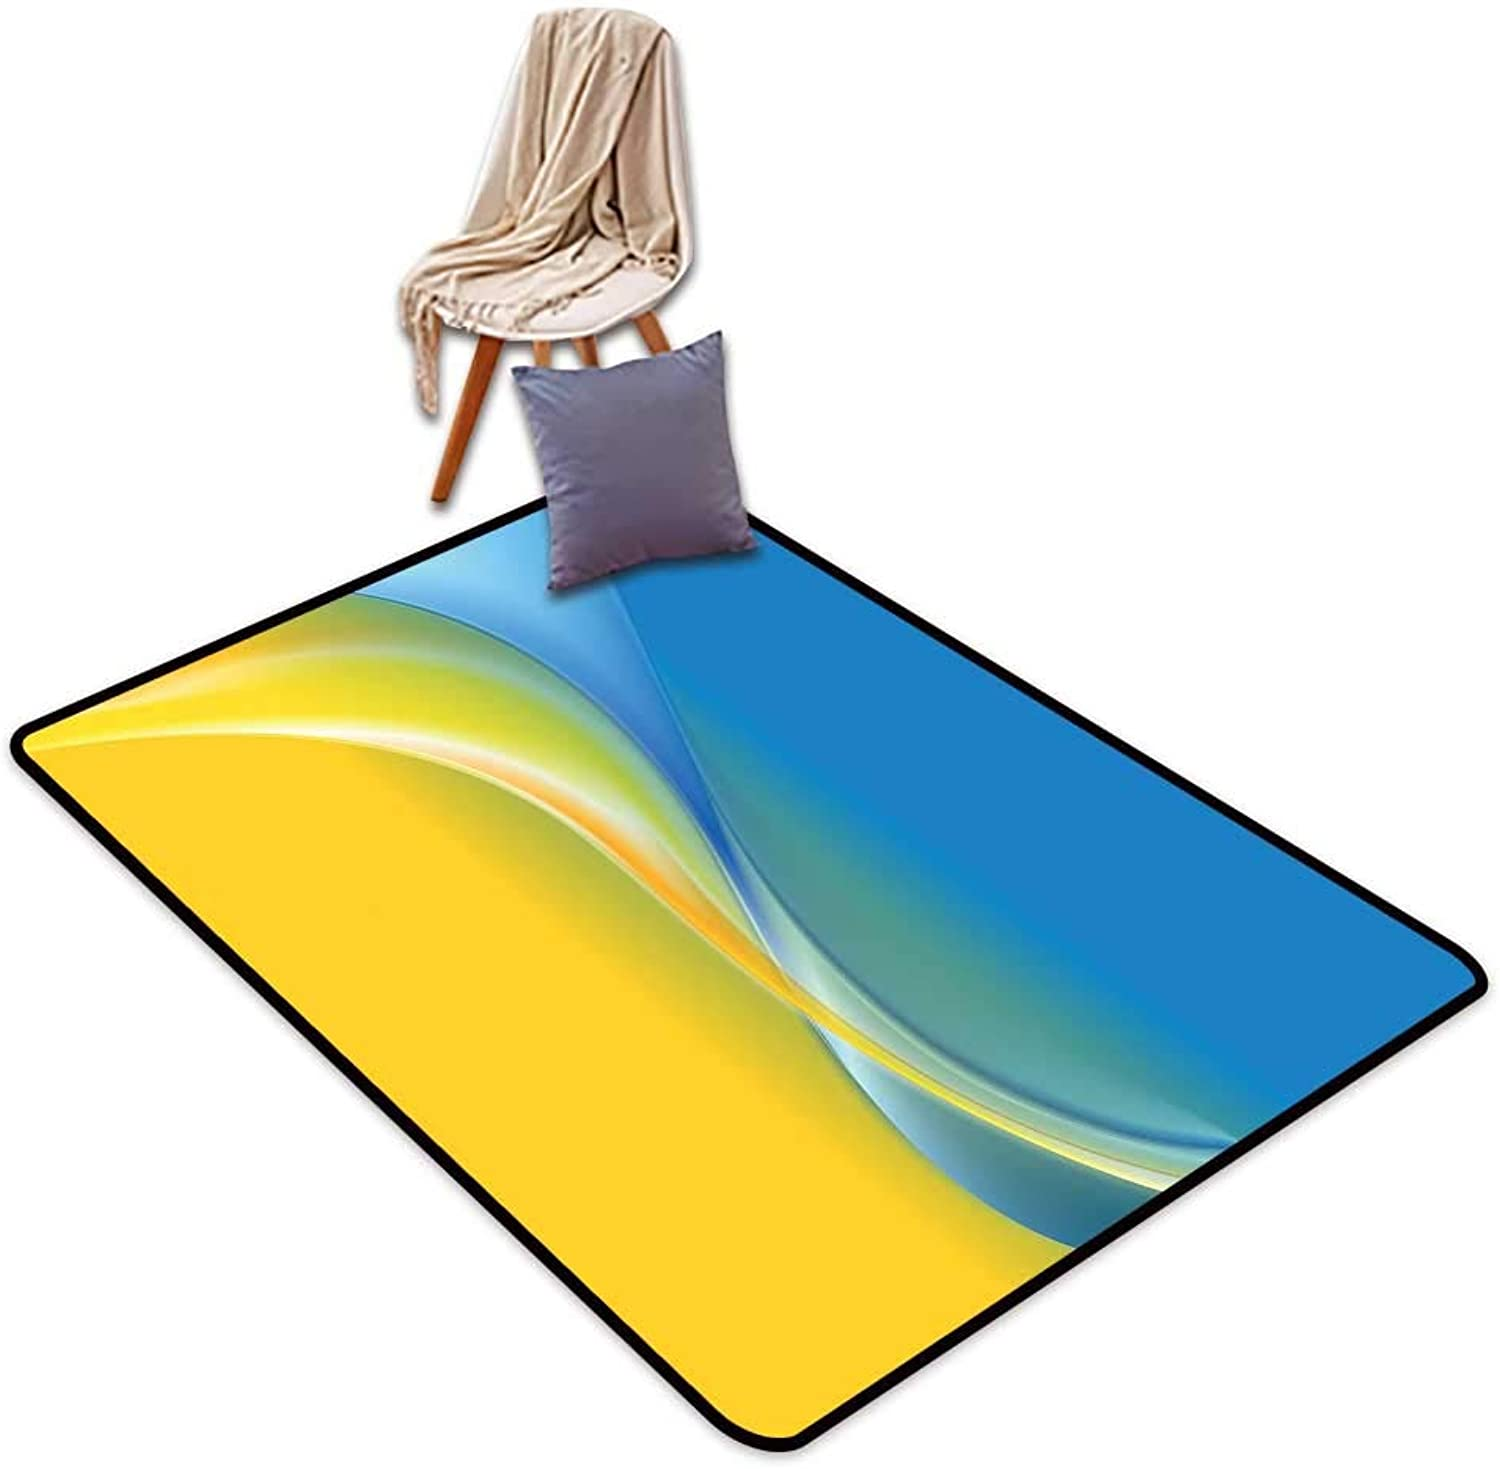 Entrance Door mat Yellow and bluee color Waves Ukrainian Flag Inspired Design in Vibrant colors Curvy Line W4'xL6' Suitable for Family